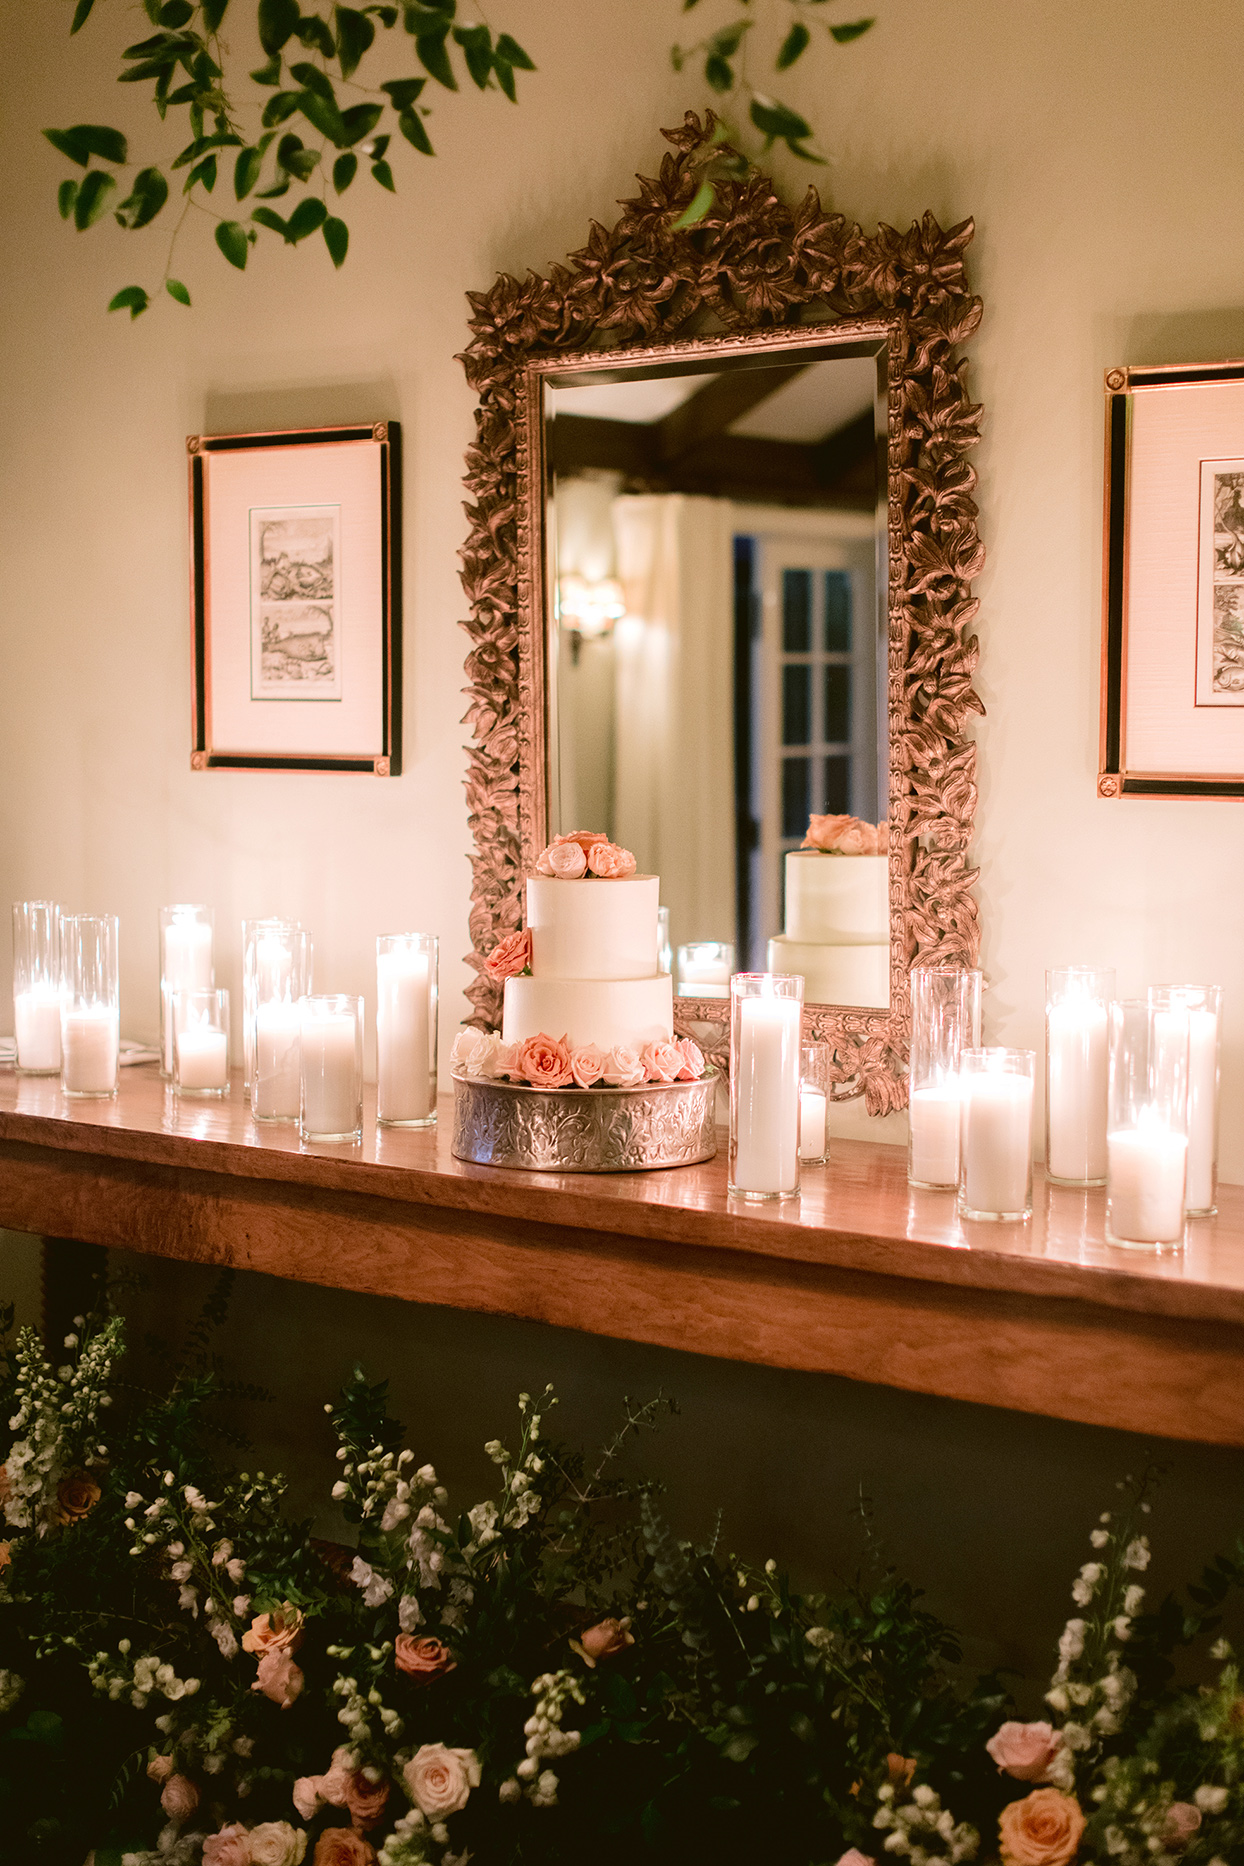 wooden table with candles and wedding cake